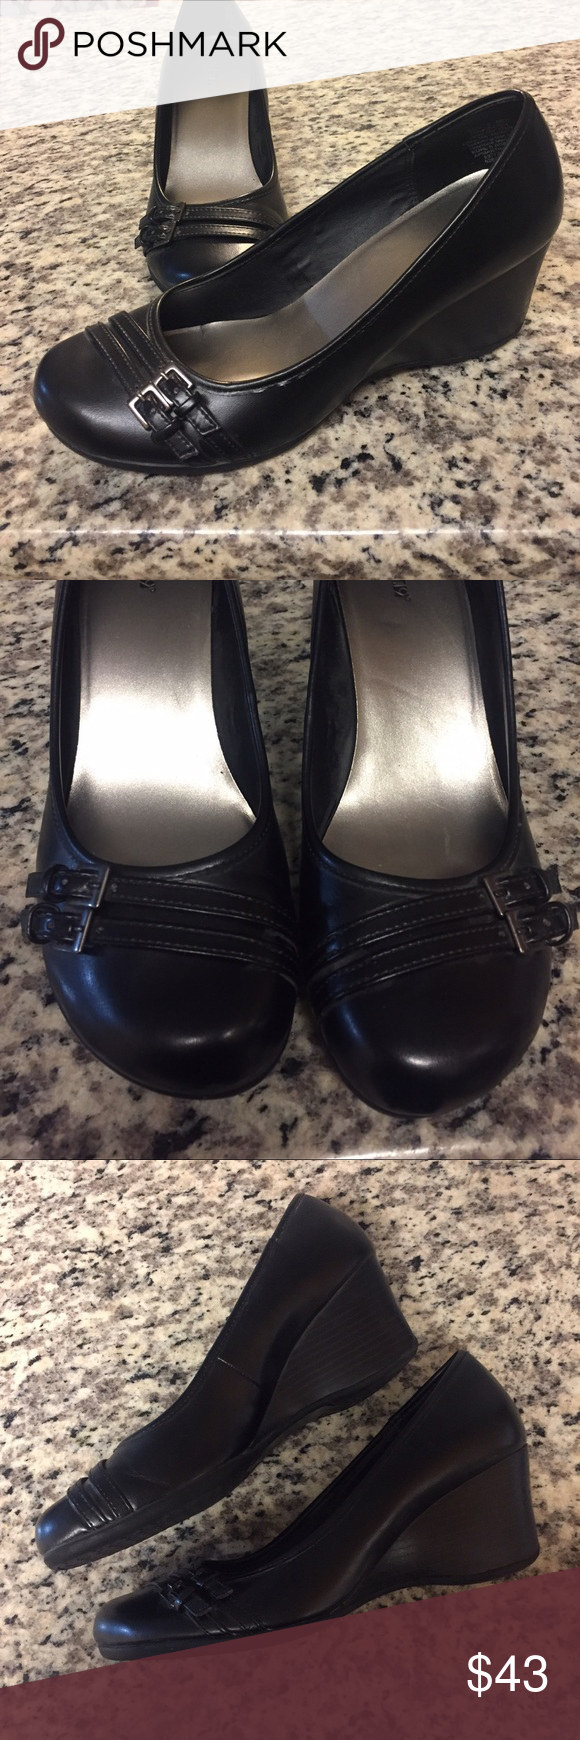 apt 9 comfort wedge heels The buckle details across the toe of these Apt. 9 Wedges ensure a polished appearance. In black. Wedge heel offers stability and comfort. Round toe, padded footbed   2 1/2-in. heel. Great condition worn only a few times Apt. 9 Shoes Wedges